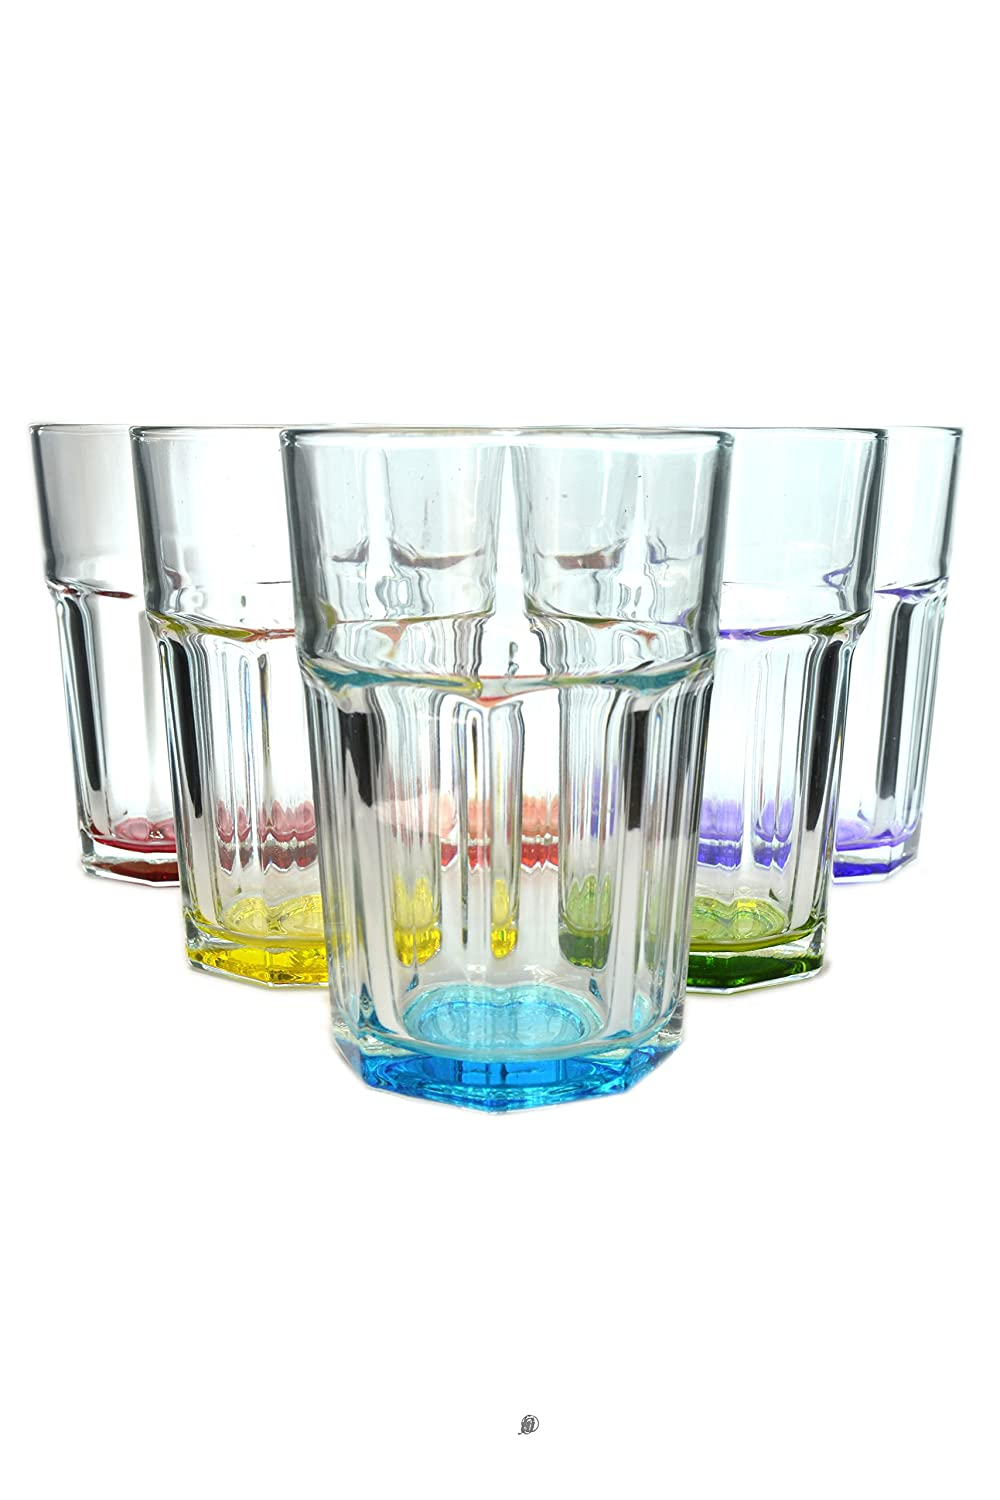 Set 6 Large Assorted Color 12oz European Glass Water/Juice Drinking Glasses American Chateau